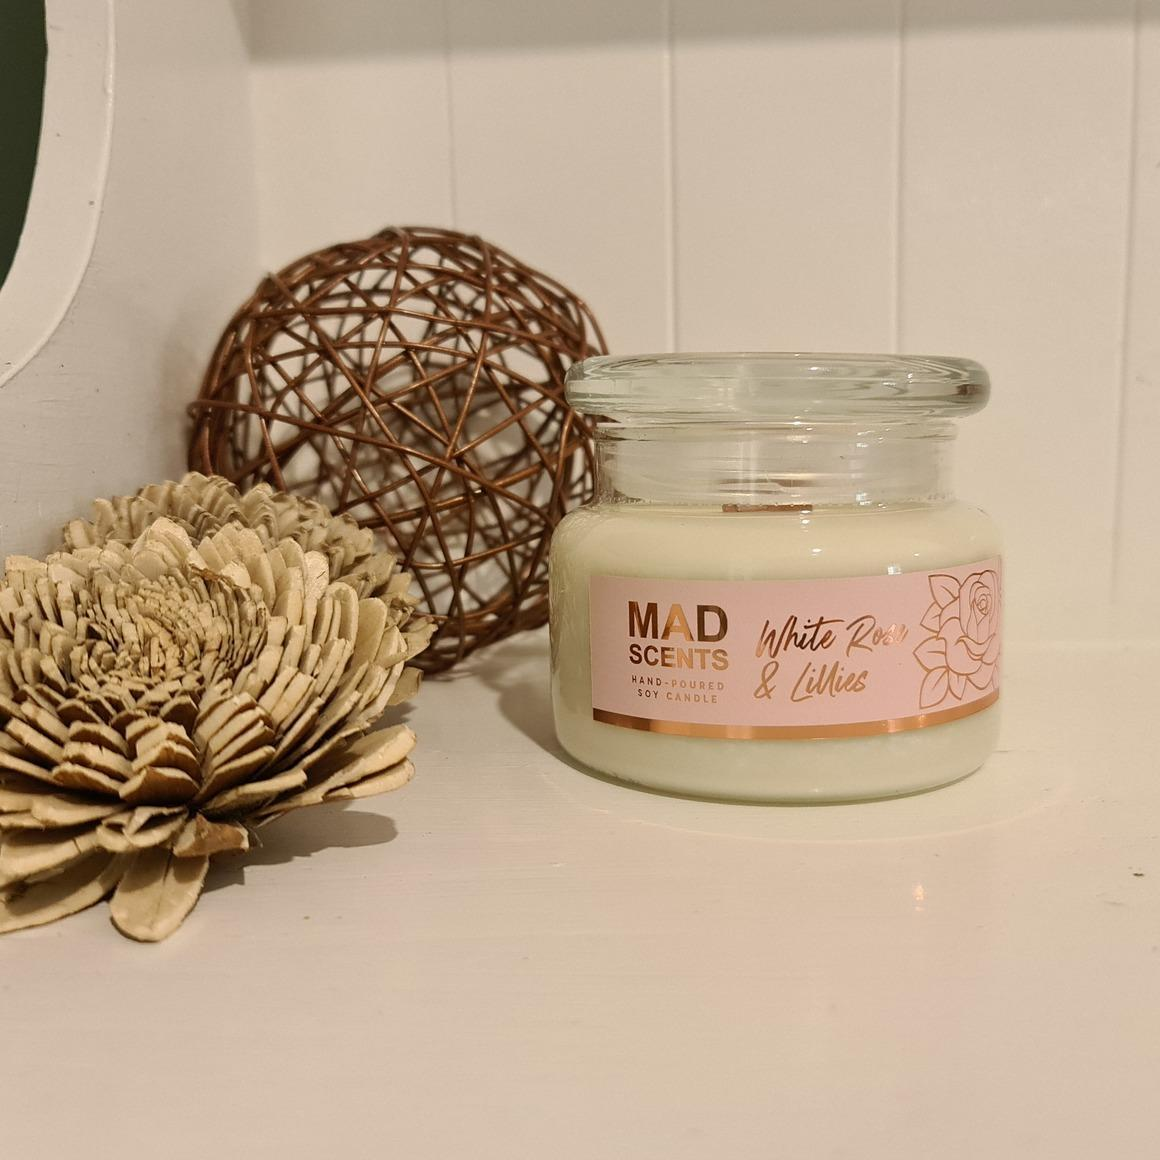 White rose & Lillies wood wick candle | Trada Marketplace